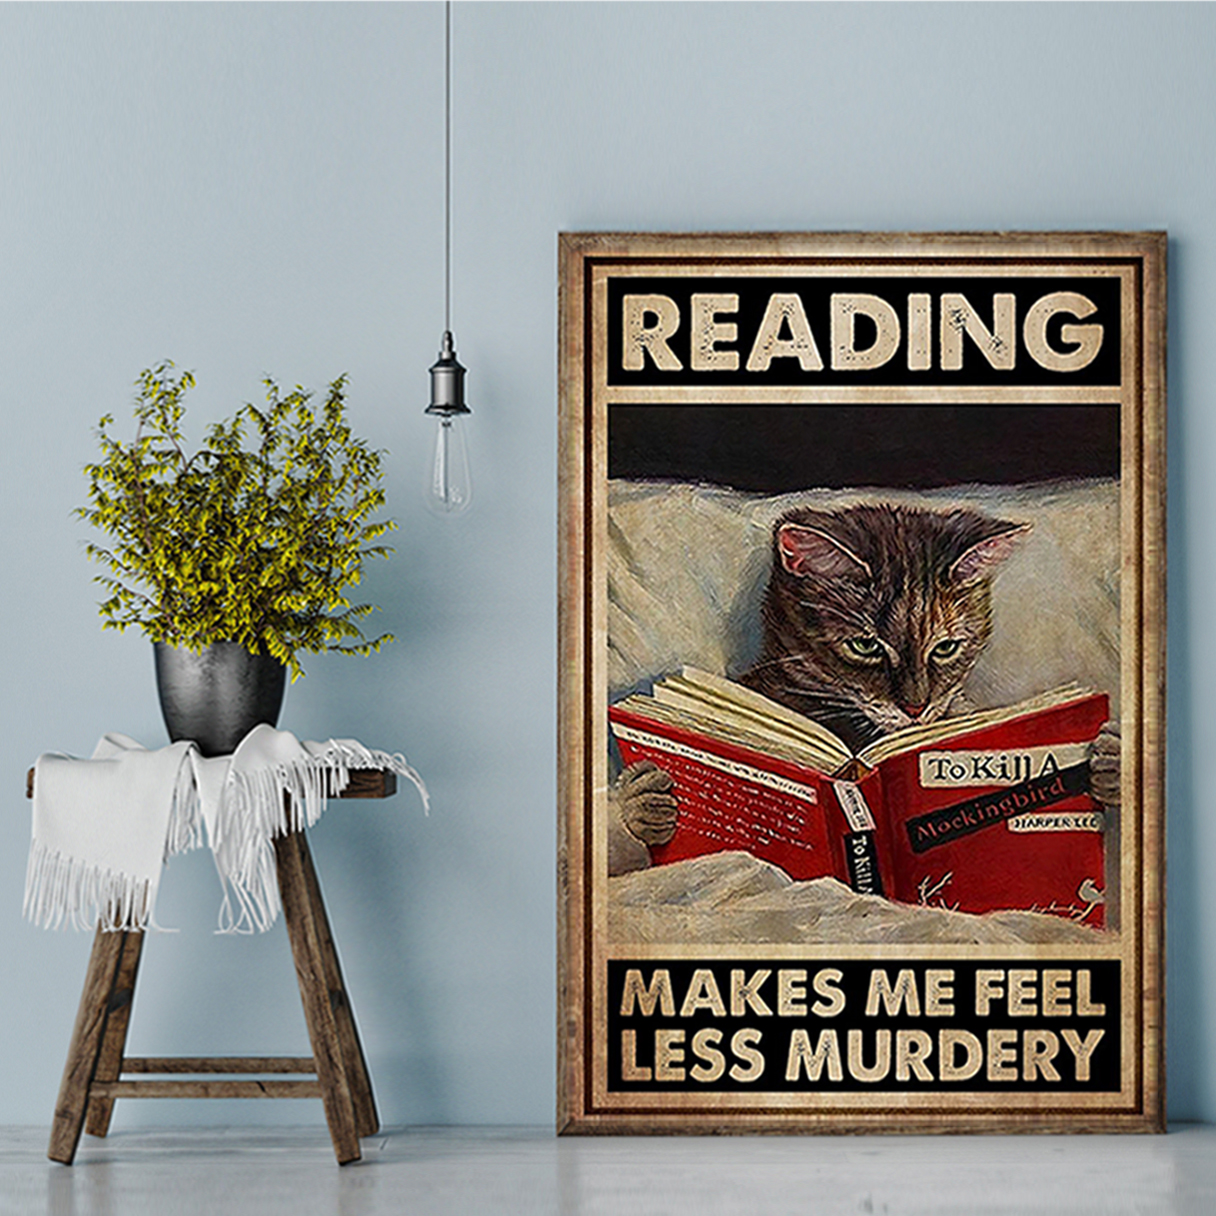 Cat reading makes me feel less murdery poster A1